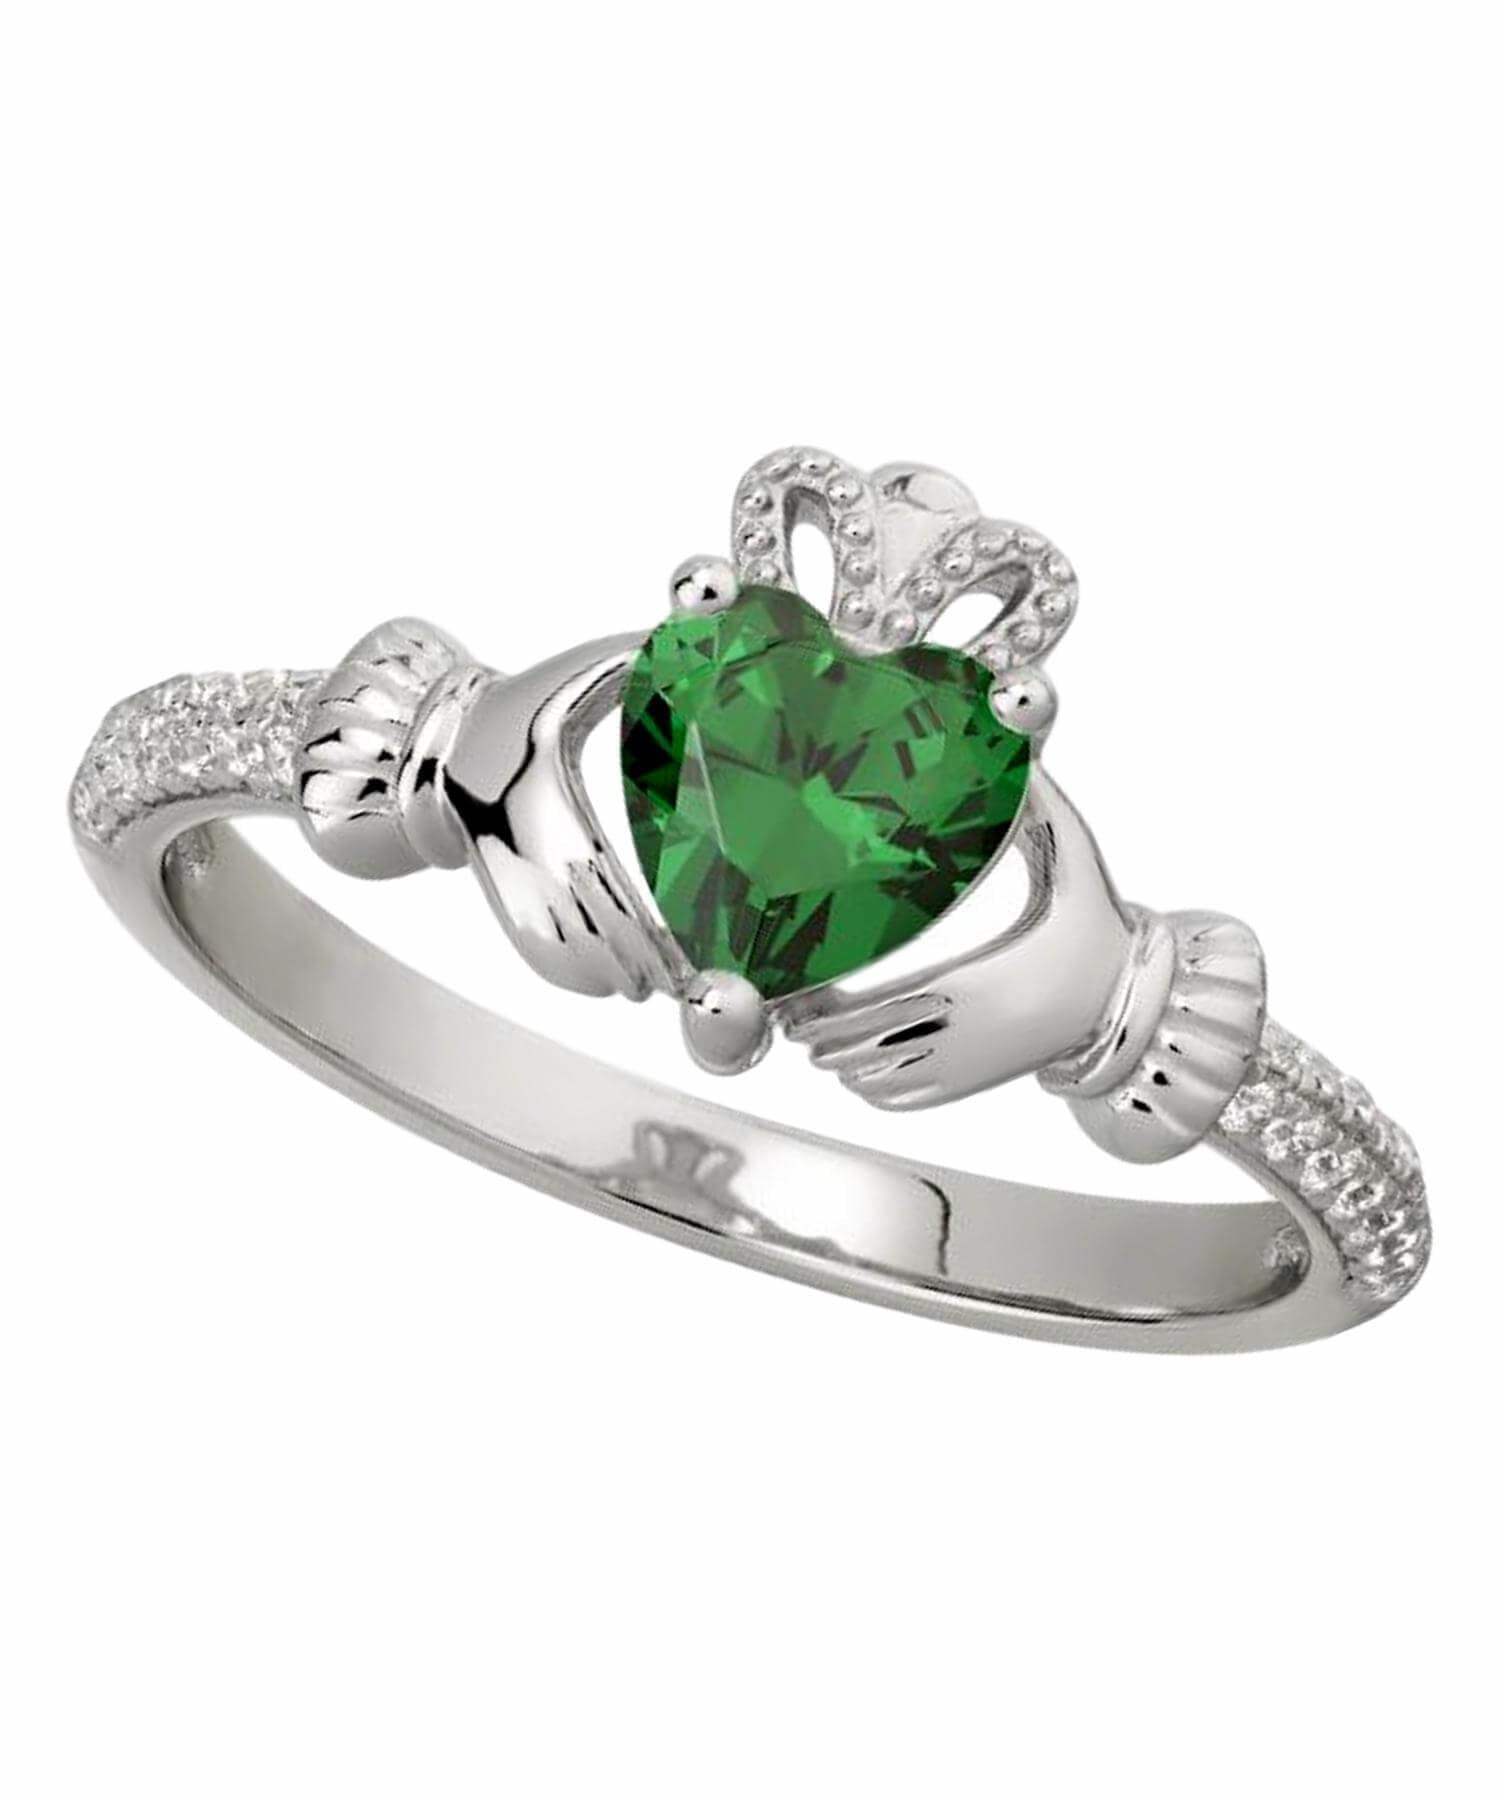 Emerald & CZ Claddagh Ring - [Solvar] - Jewellery - Irish Gifts